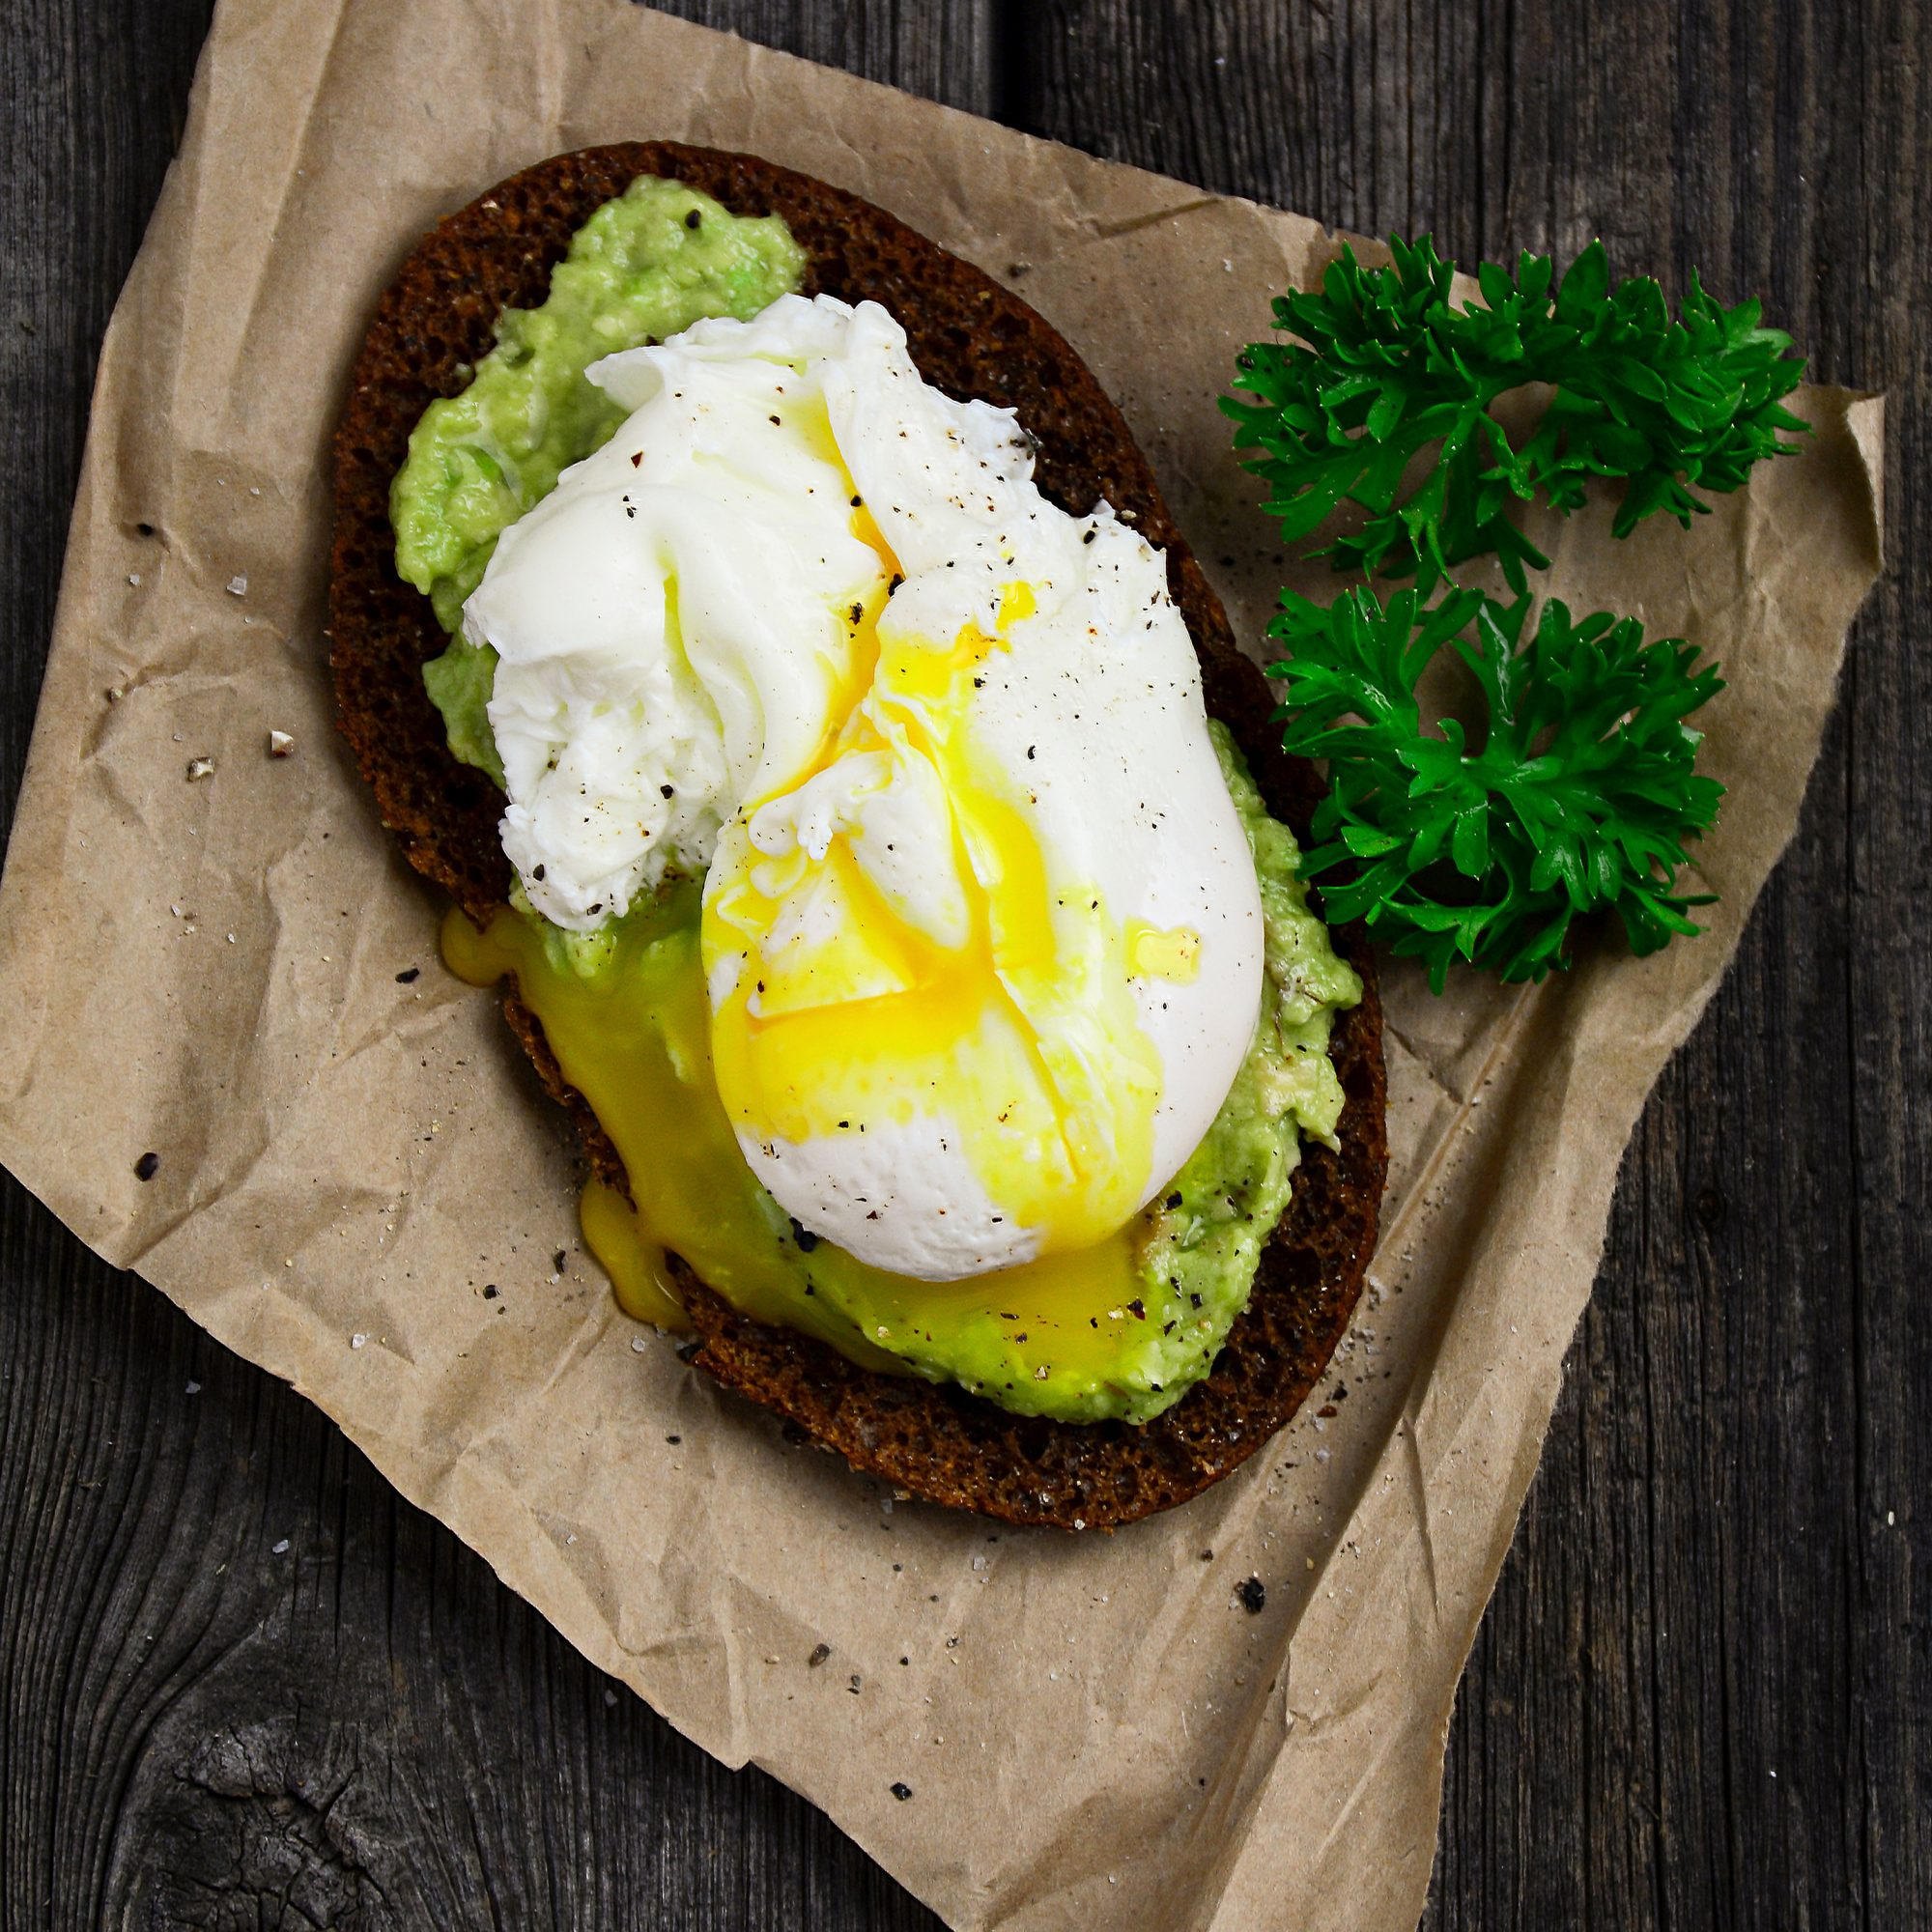 FWX TOAST FOR EVERY MEAL